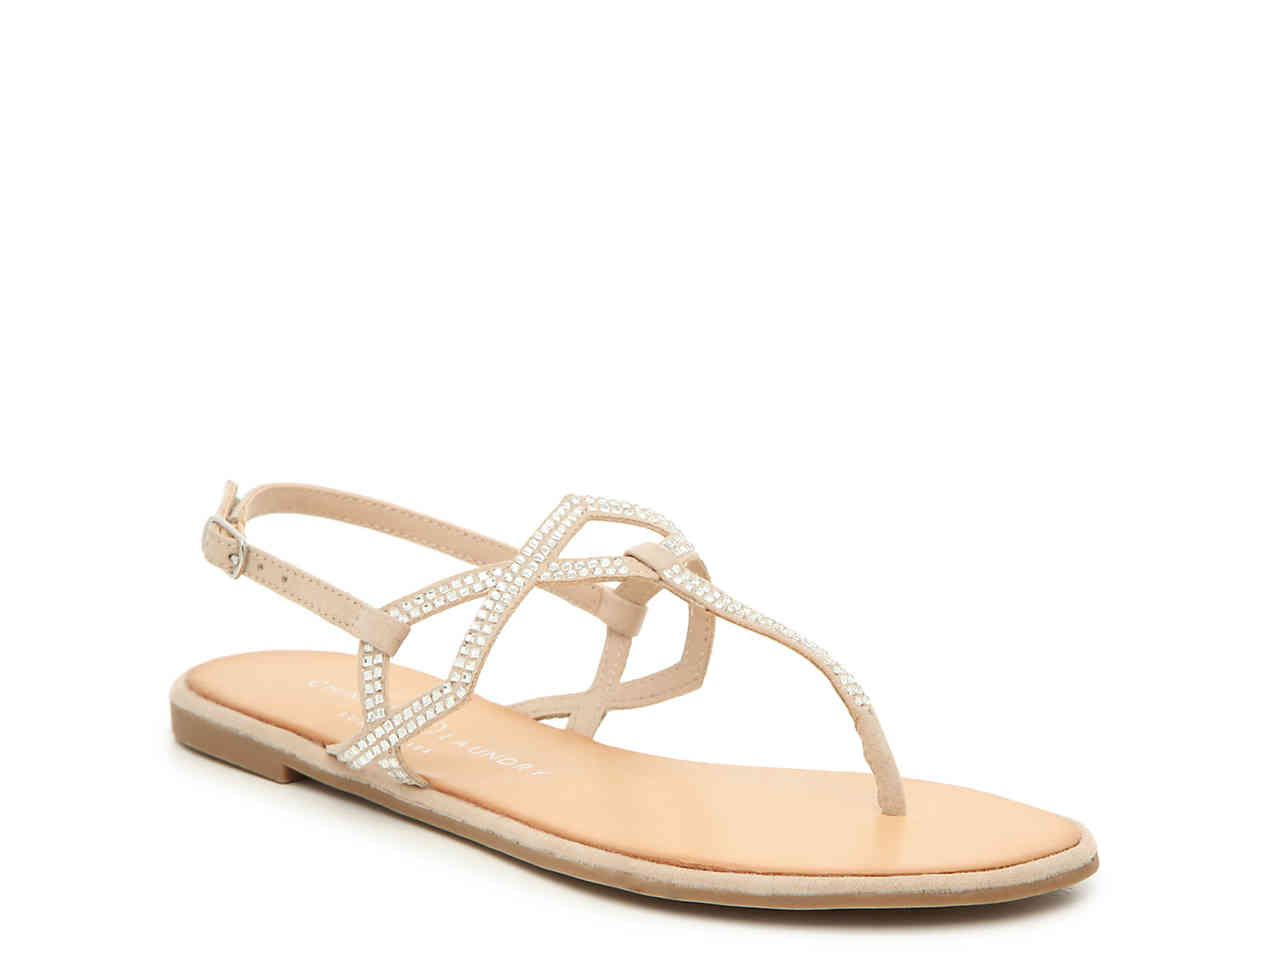 Chinese Laundry Gelda Sandal Women S Shoes Dsw Sandals Shoes